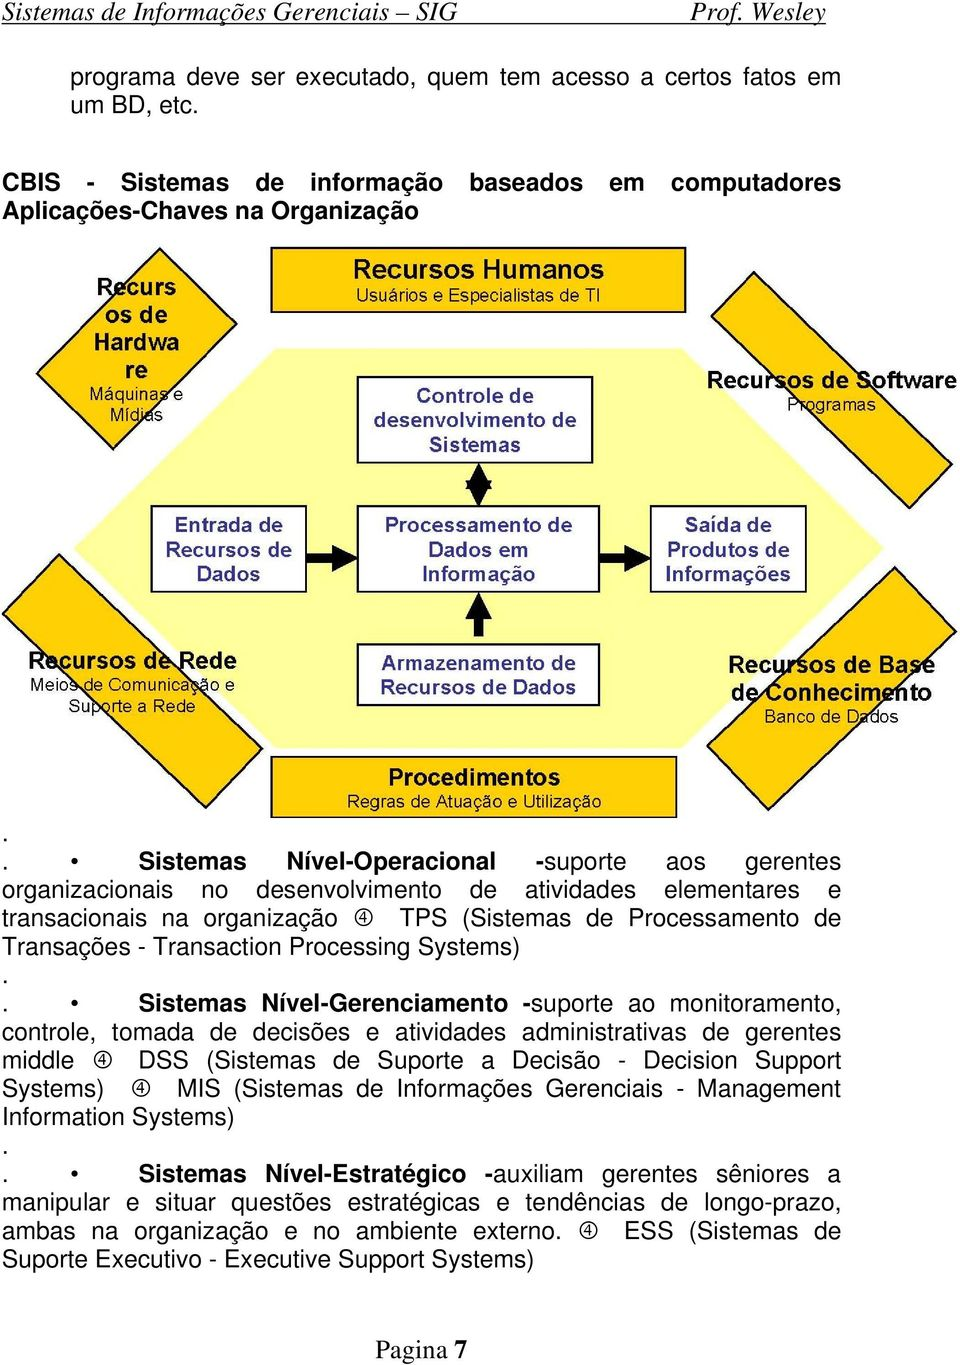 Transaction Processing Systems).